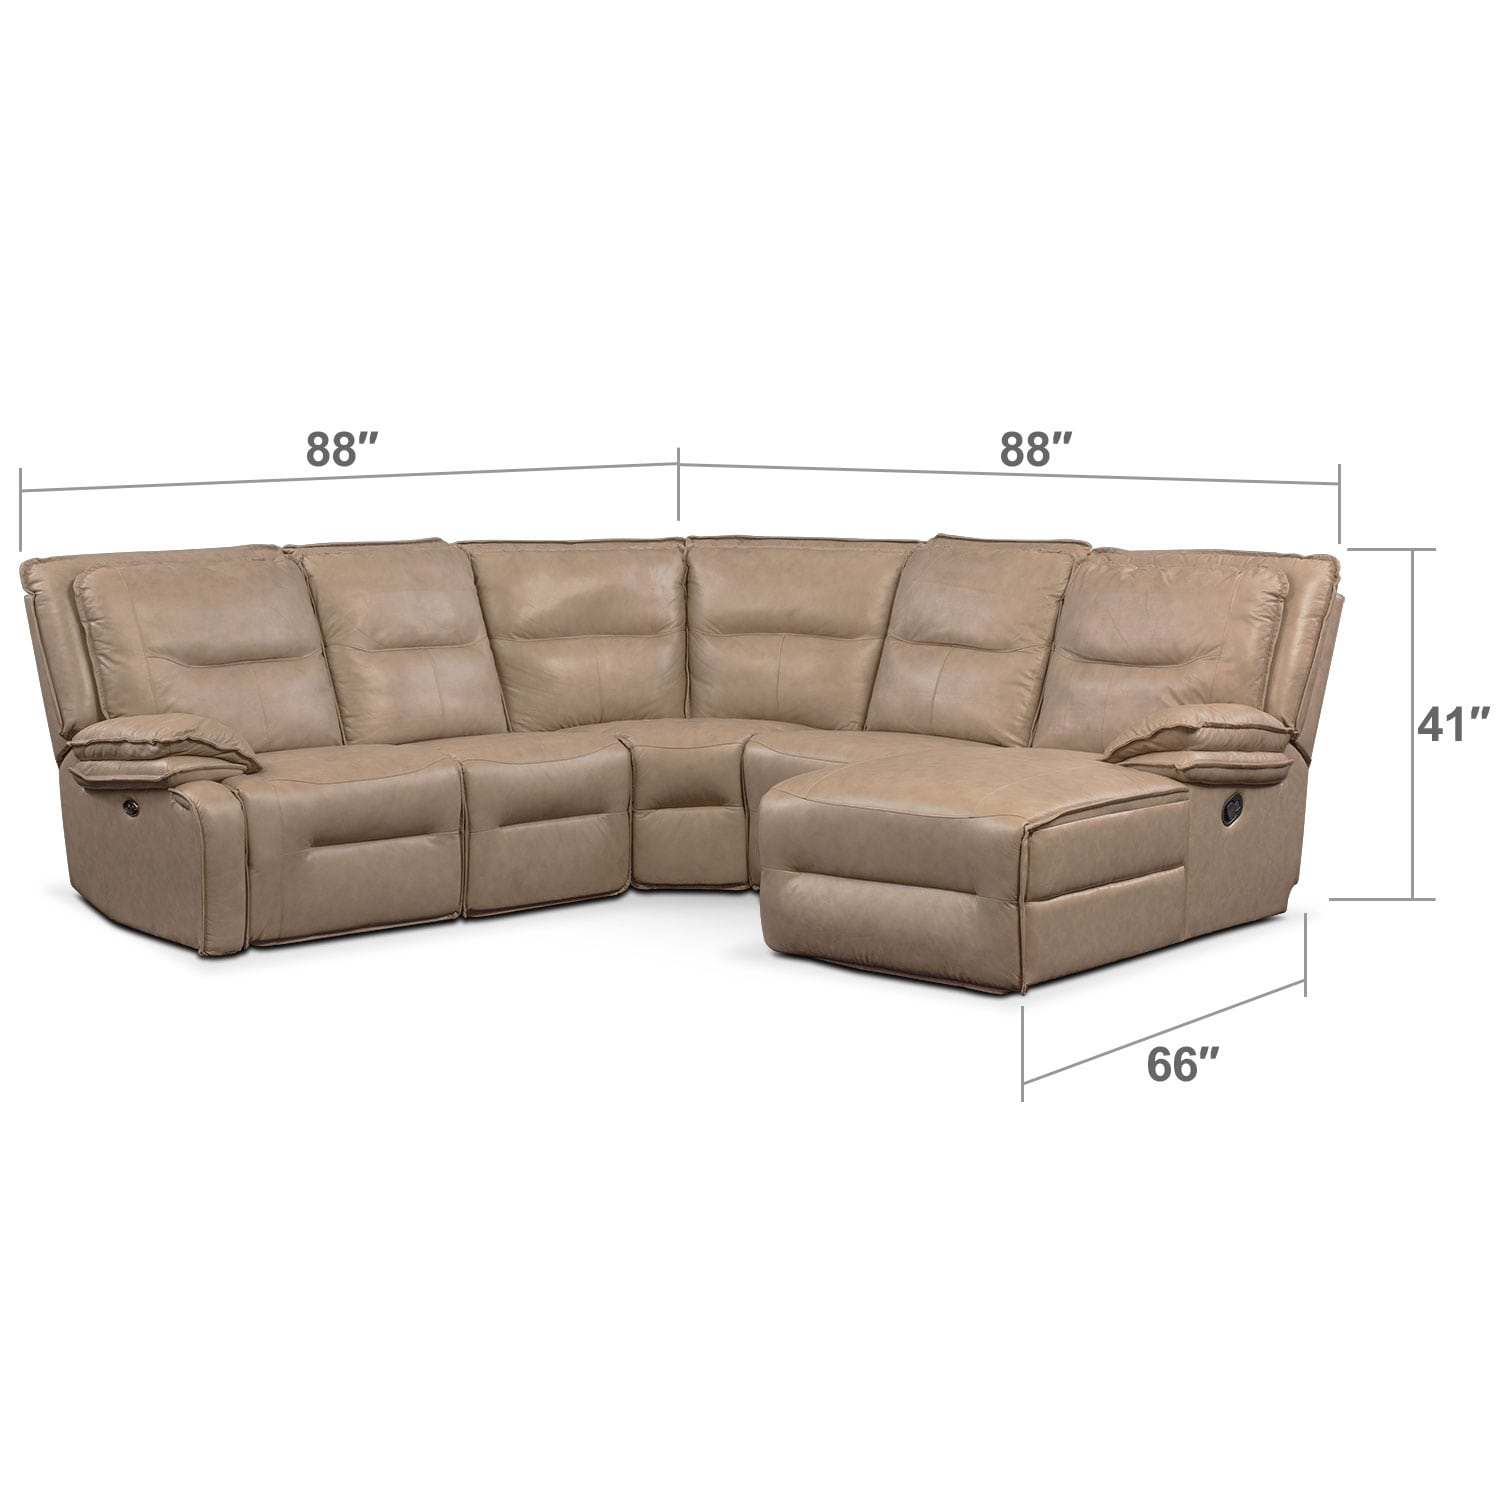 Living Room Furniture - Nikki 5-Piece Power Reclining Sectional with 1 Recliner and Right-Facing Chaise - Taupe